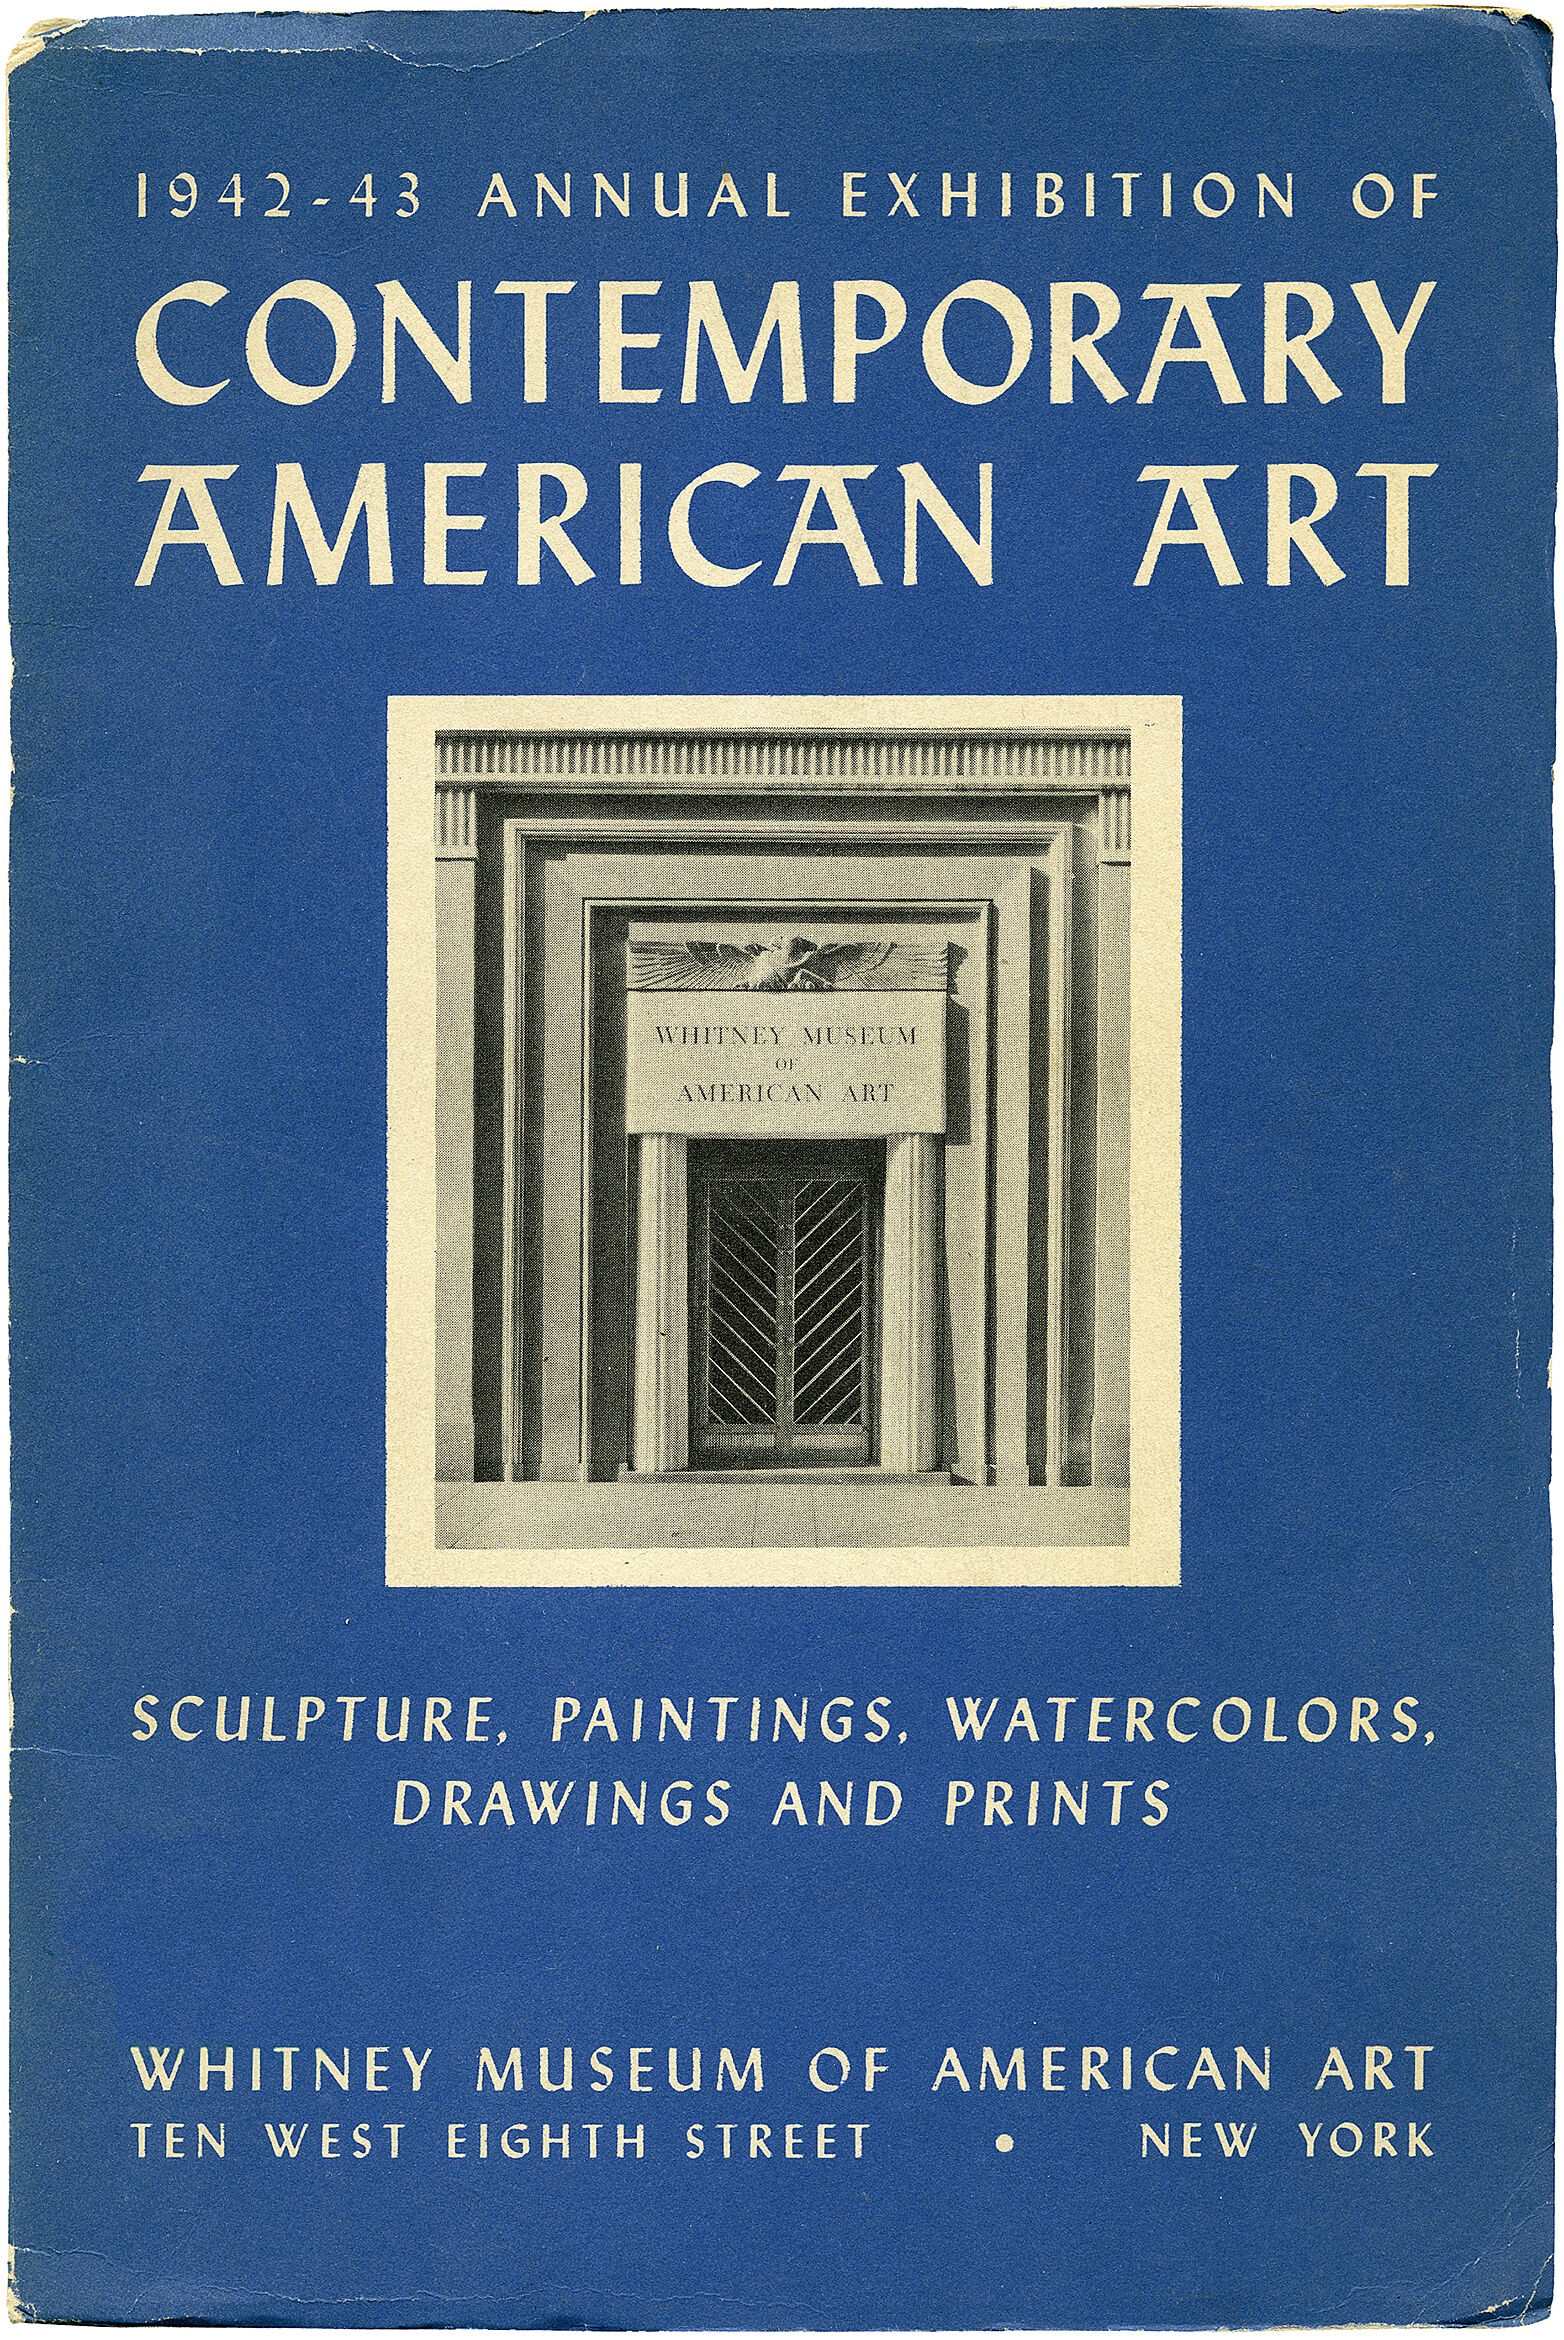 Cover for 1942 Annual Exhibition of Contemporary American Art catalogue